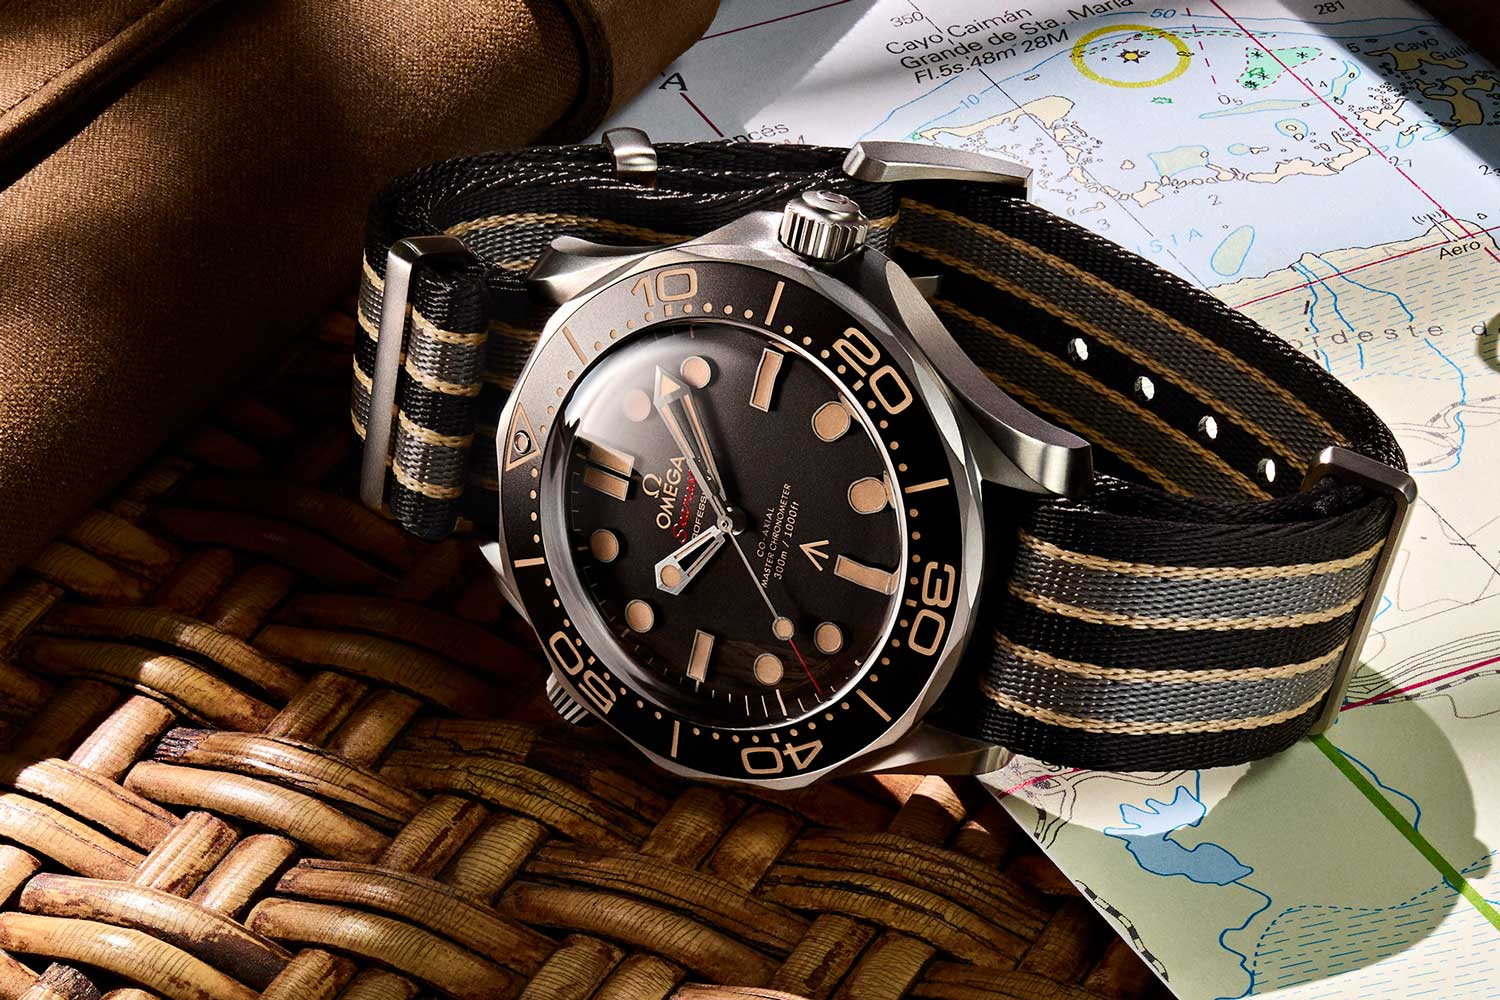 The brand new Seamaster Diver 300M features the Broad Arrow and is housed in grade 2 titanium with a grade 2 titanium mesh Milanese-style flat bracelet, a first for the series and designed with input from Daniel Craig himself